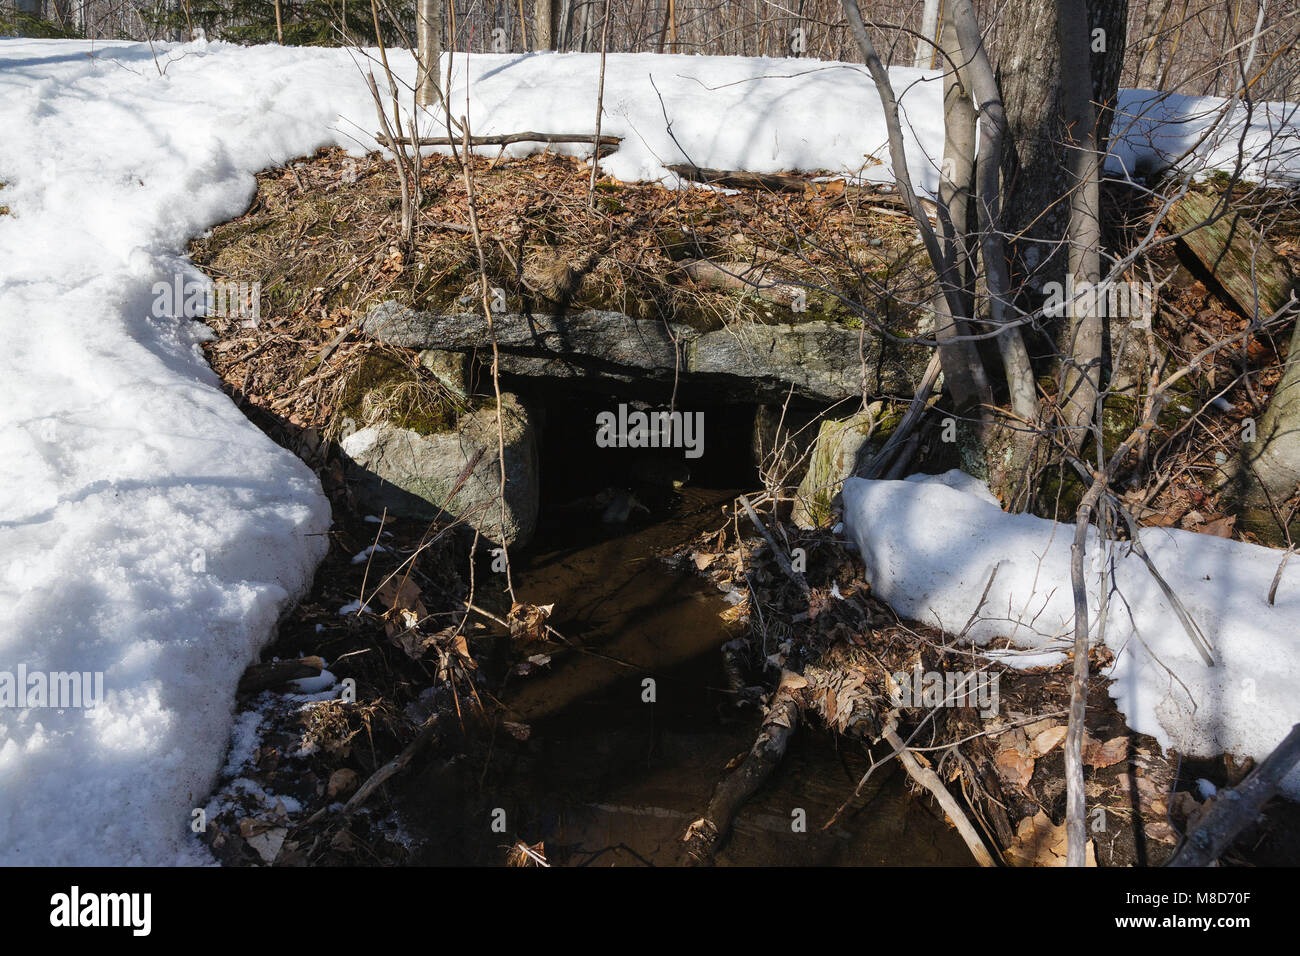 Remnants of a stone culvert along the old Profile & Franconia Notch Railroad in Franconia, New Hampshire USA. - Stock Image